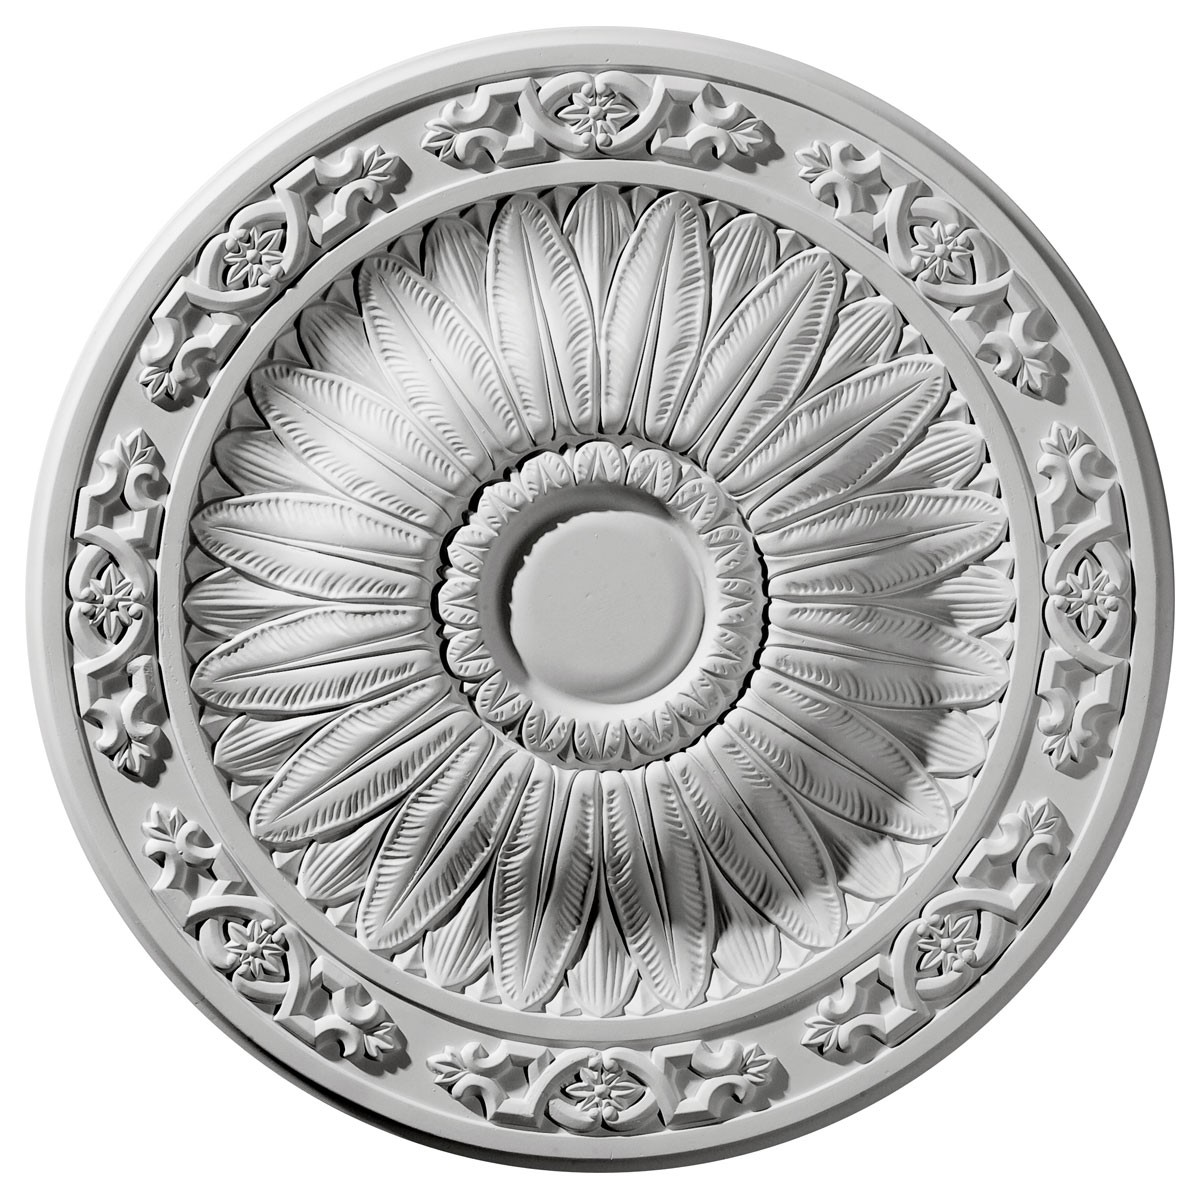 "EM-CM20LU - 20 1/4""OD x 1 1/2""P Lunel Ceiling Medallion (Fits Canopies up to 3 3/4"")"